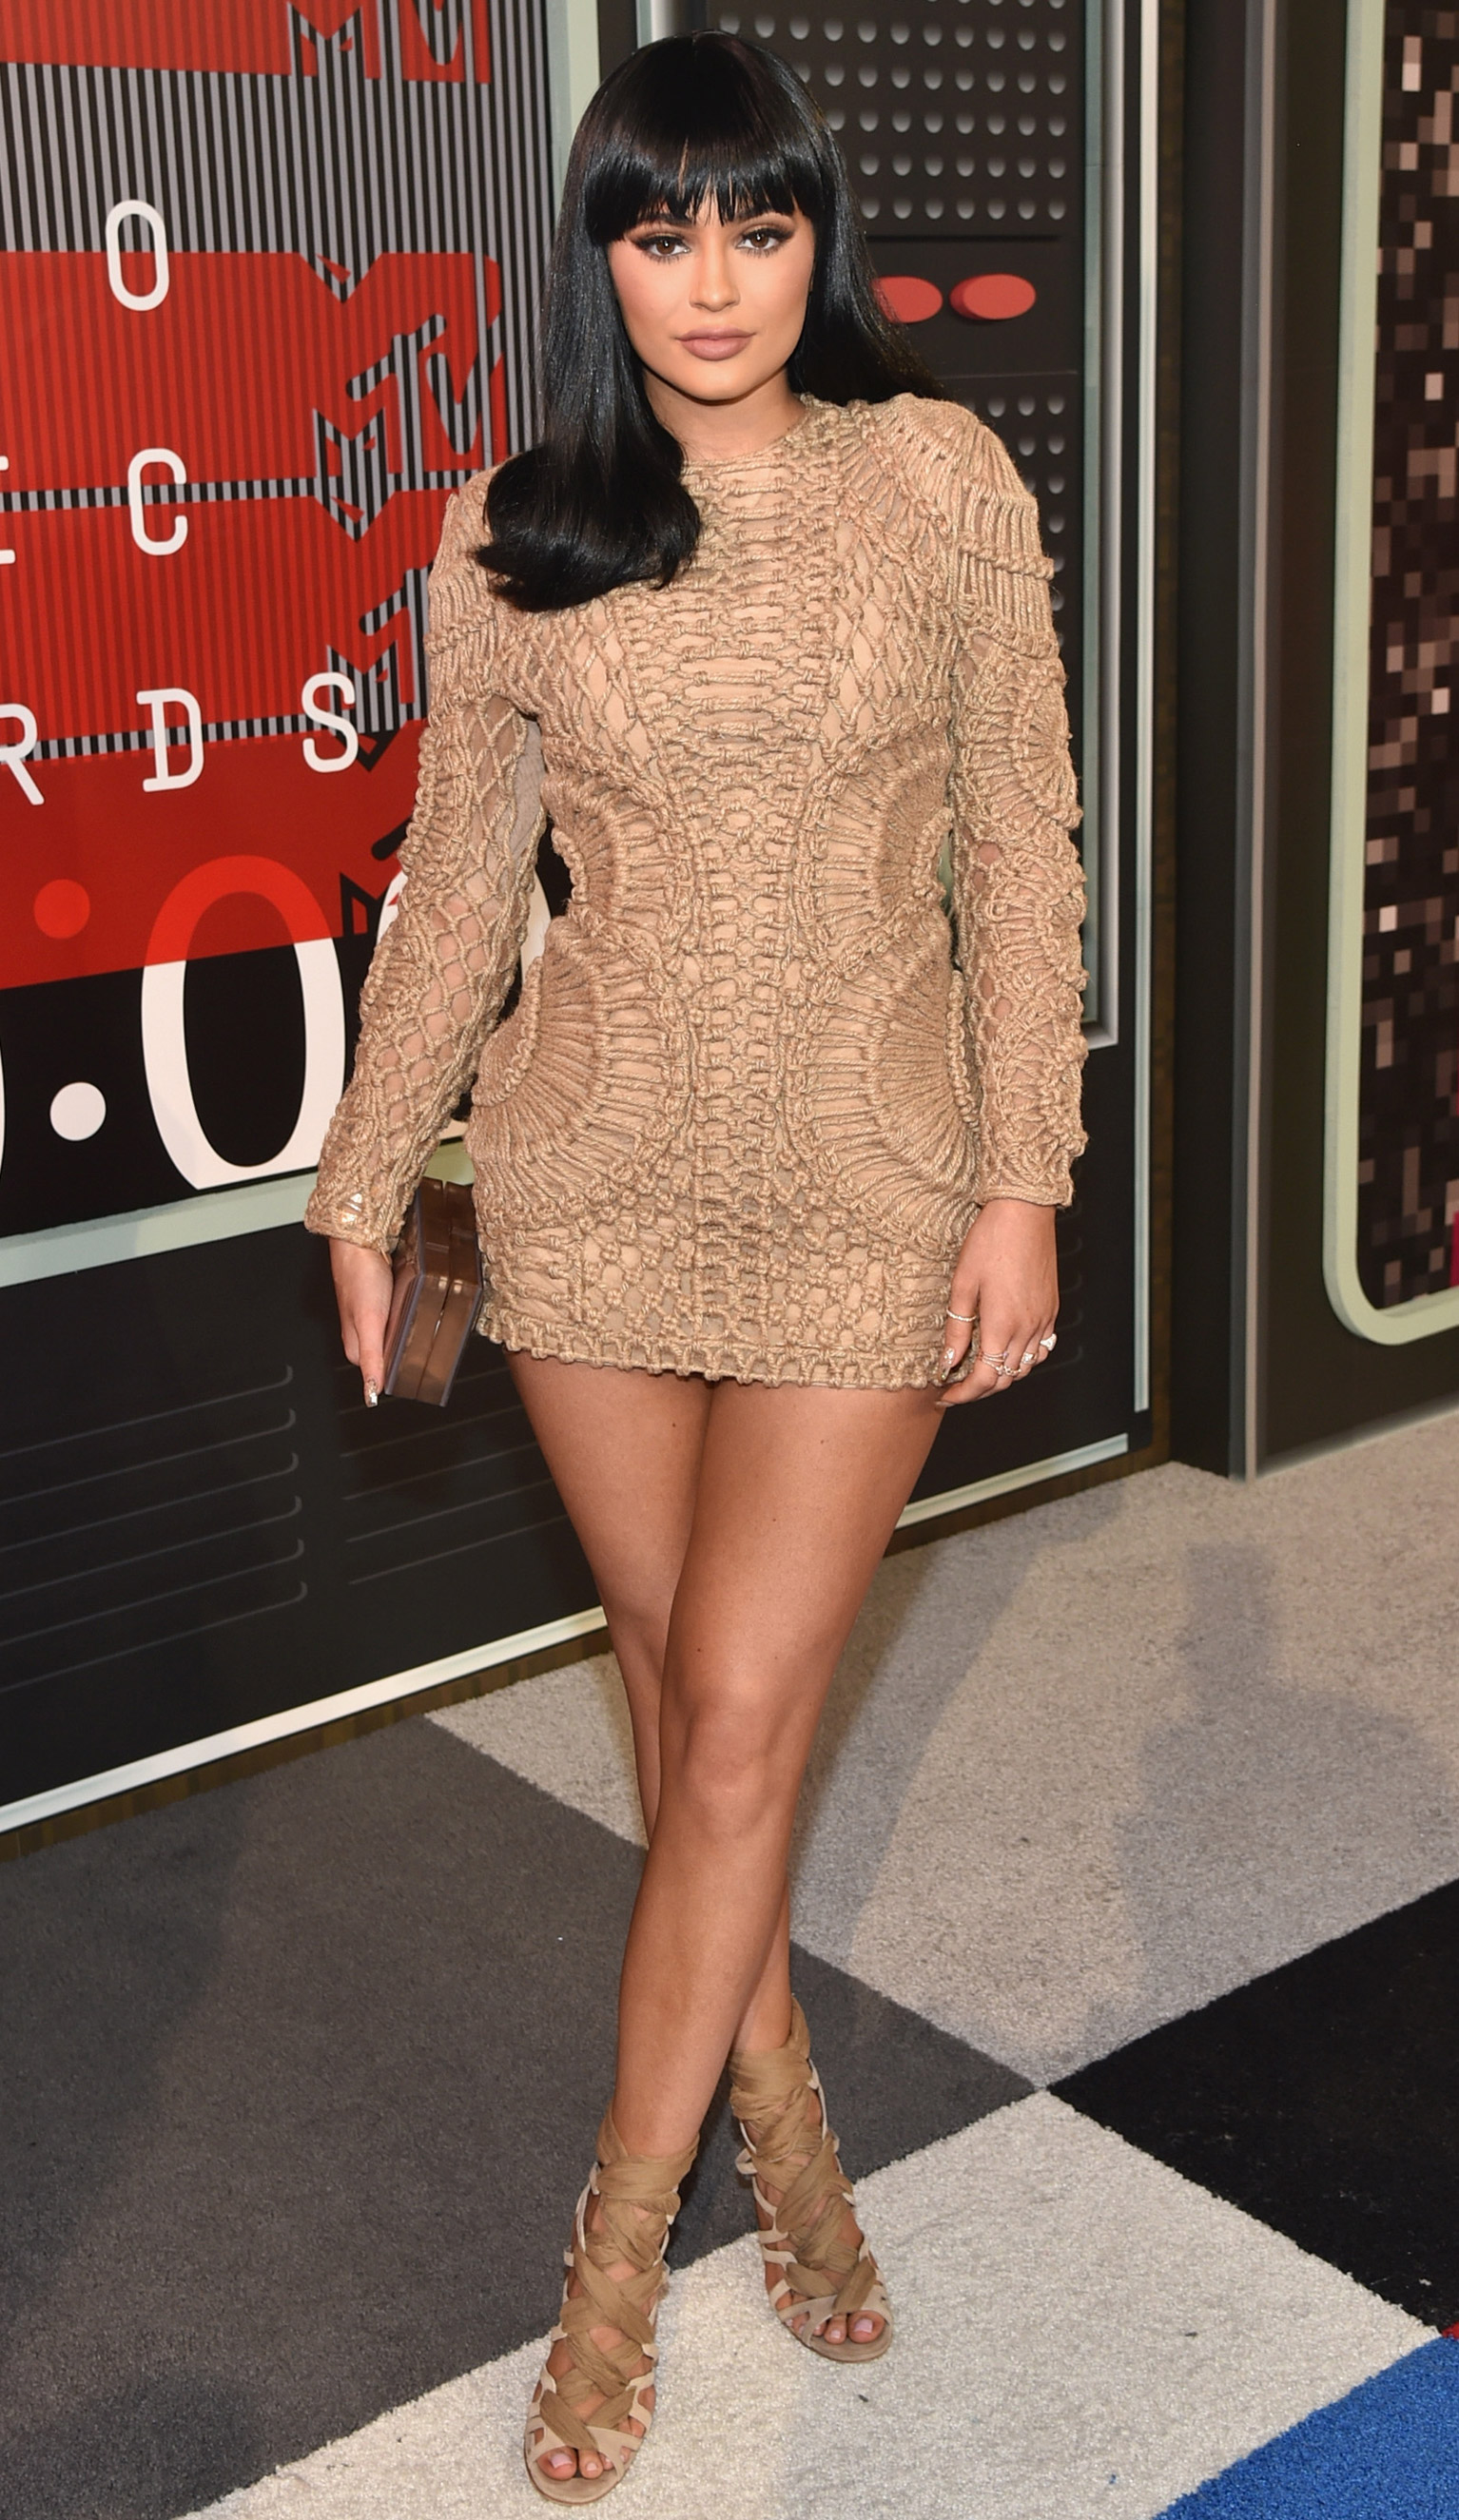 Kylie Jenner arrives at the 2015 MTV Video Music Awards at Microsoft Theater on Aug. 30, 2015 in Los Angeles.